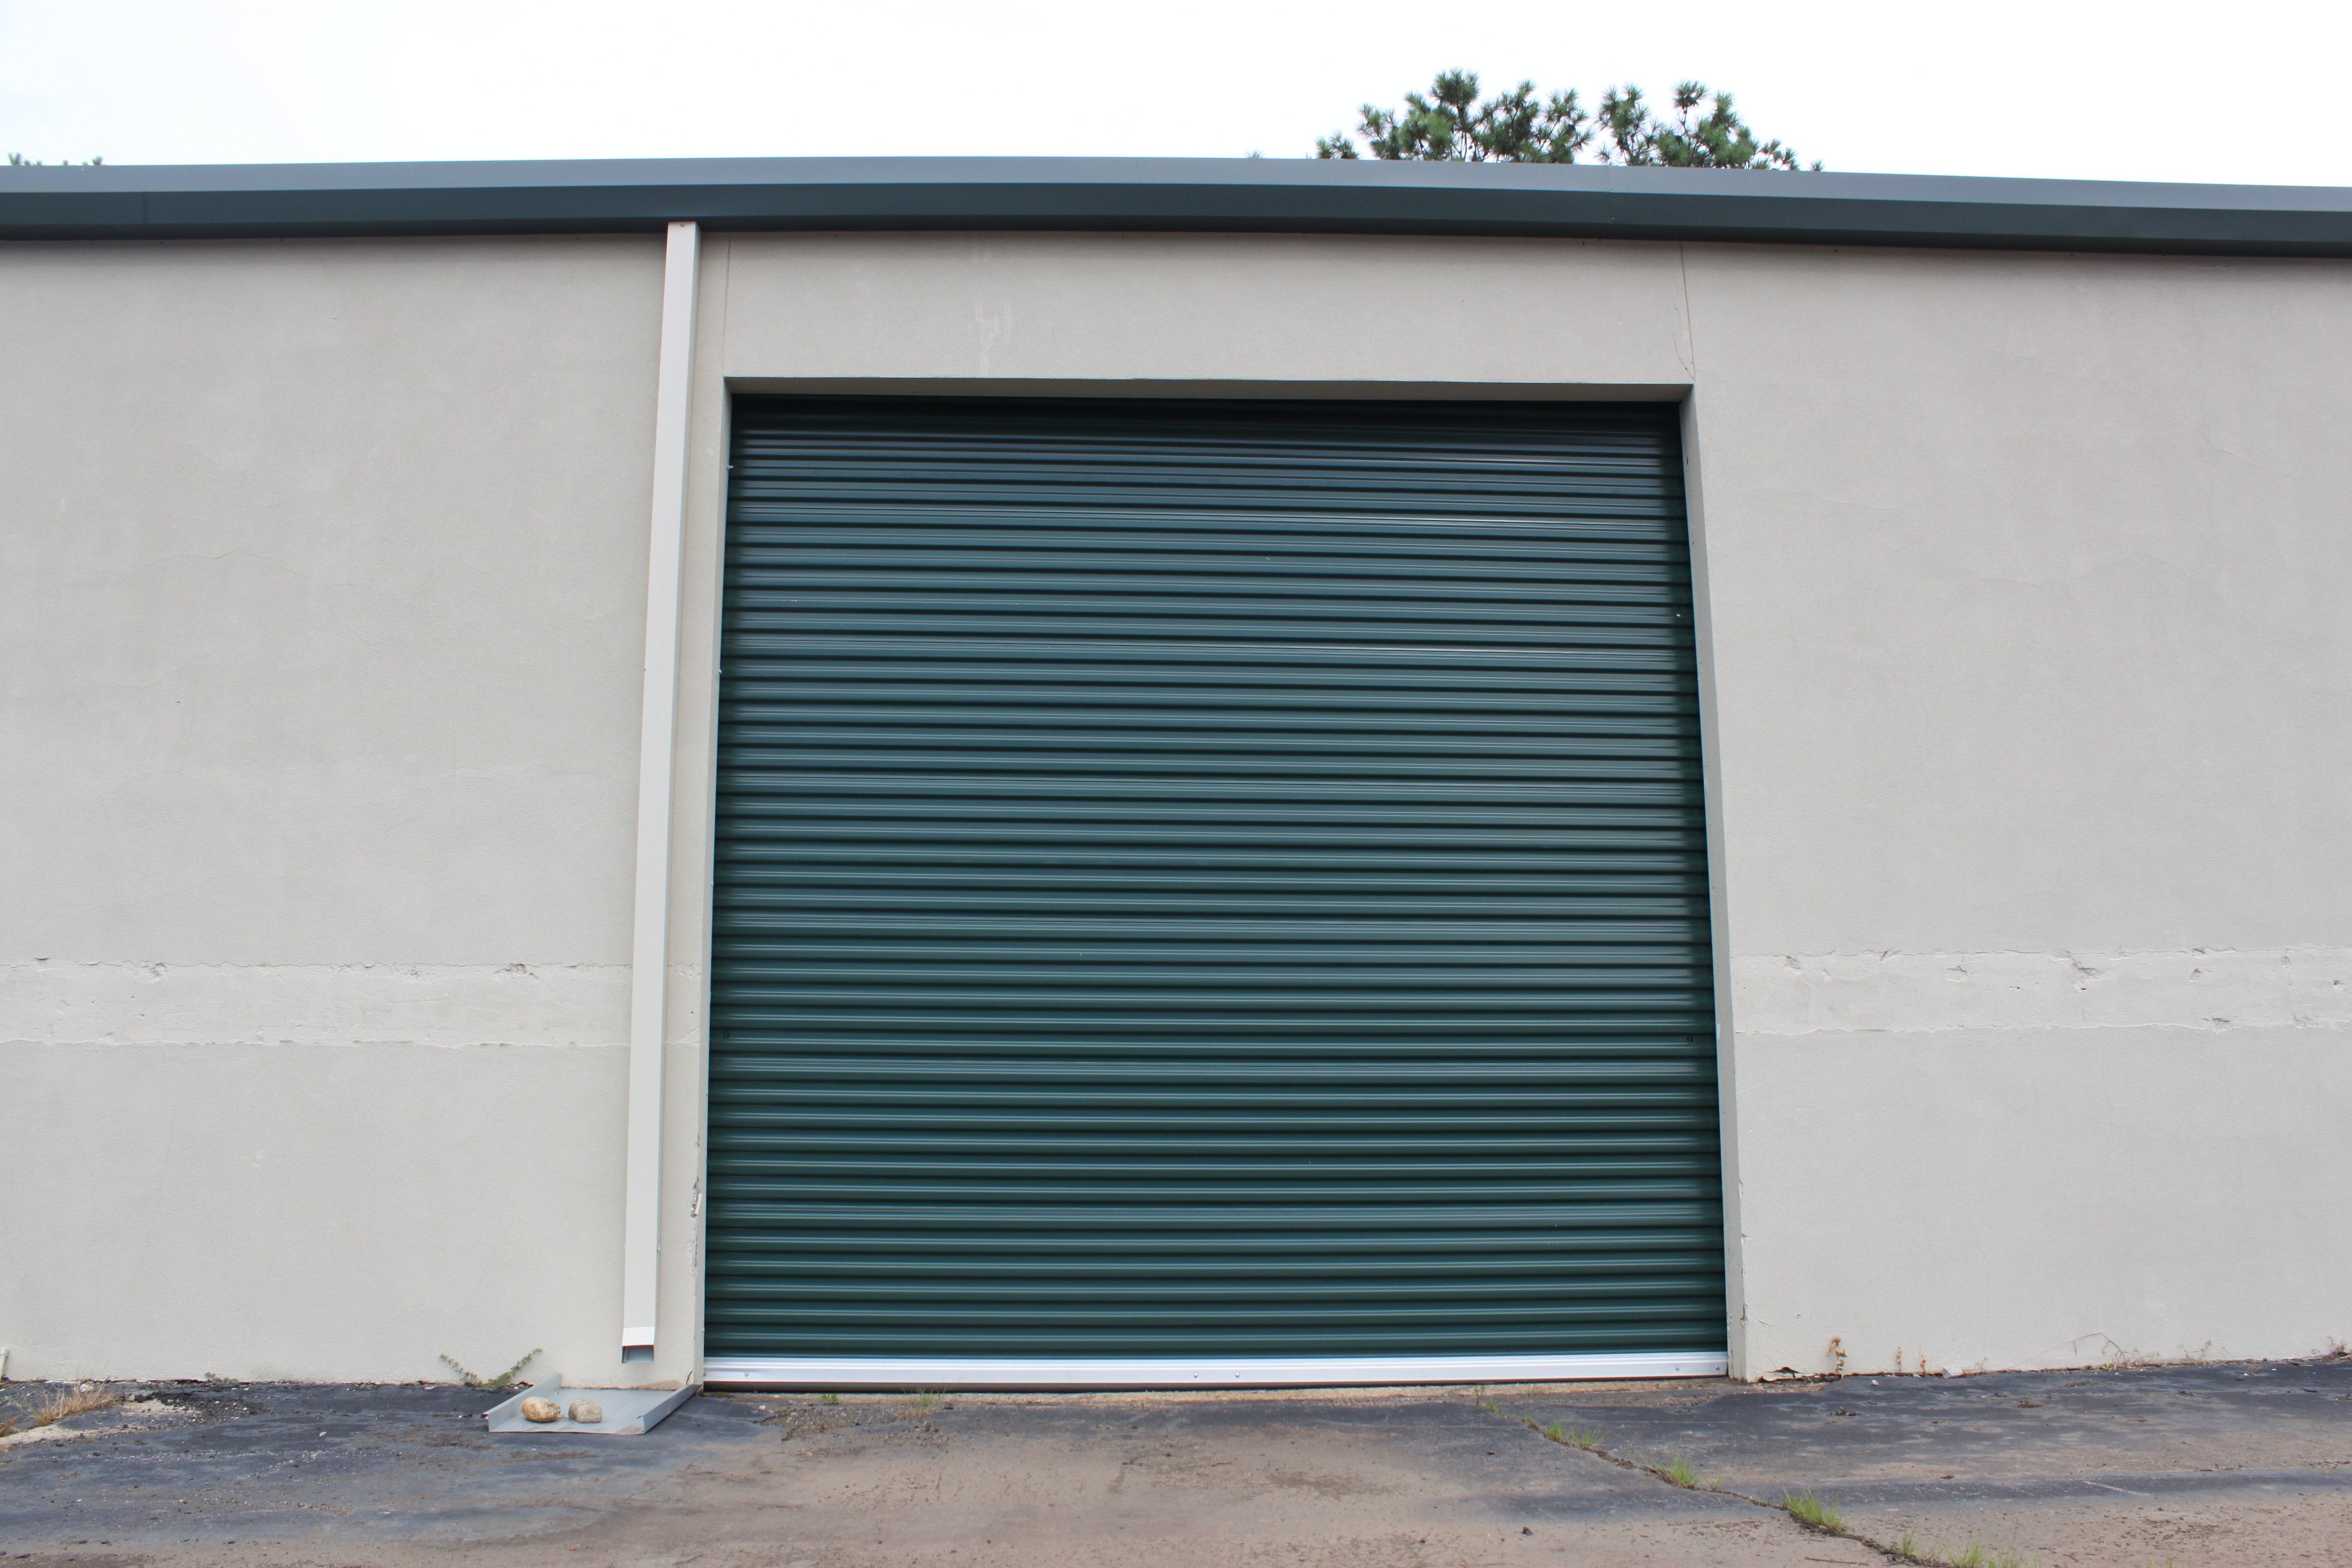 Green commercial roll up door at a facility